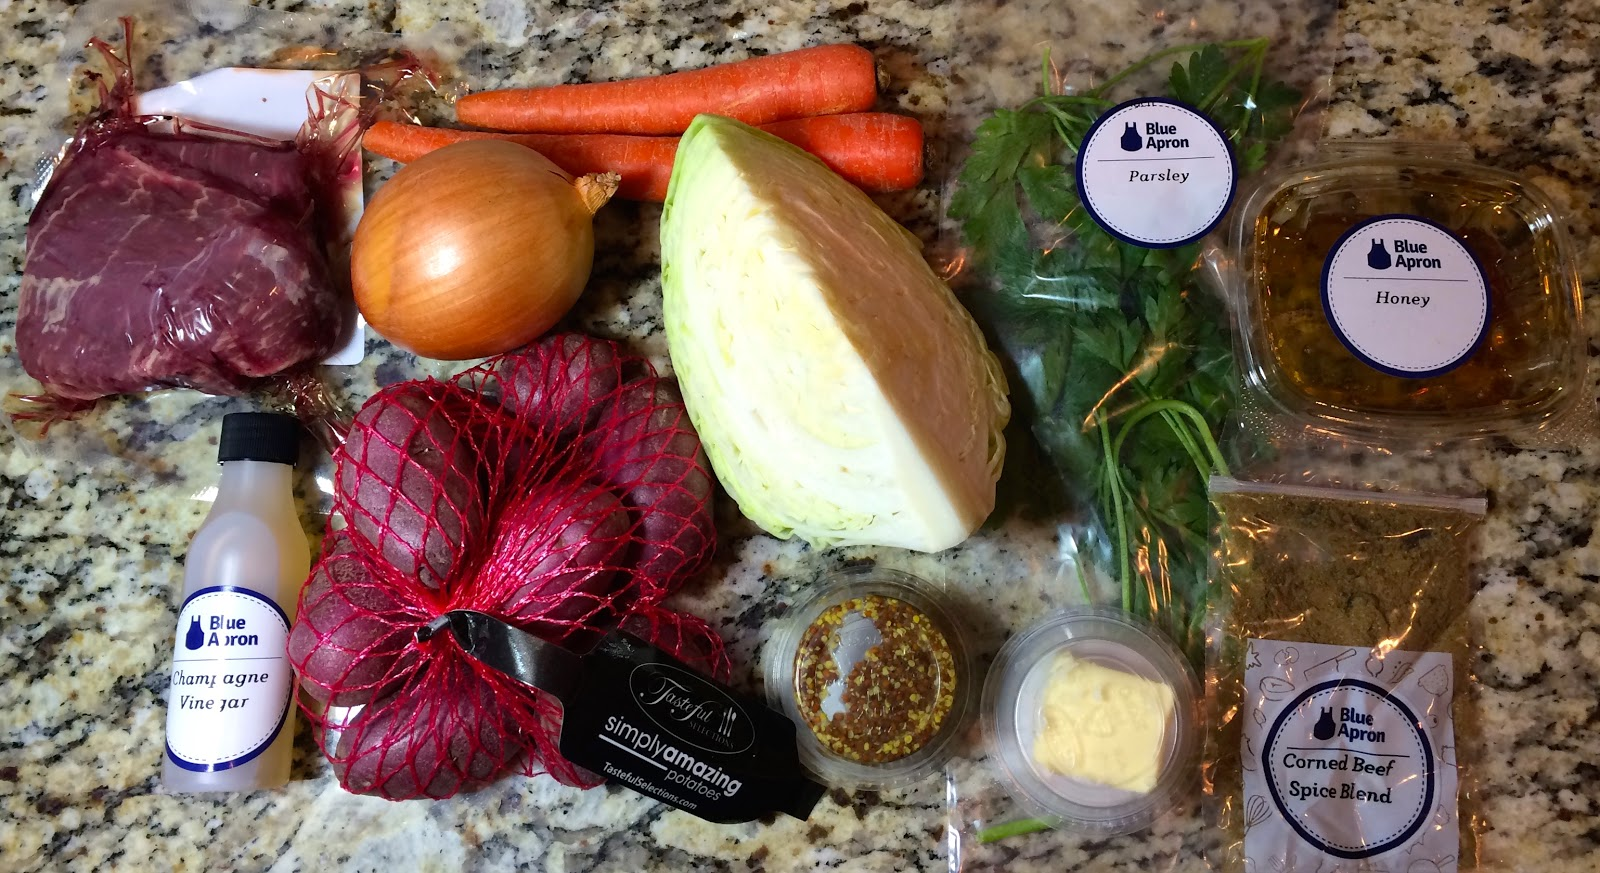 Blue apron khao soi